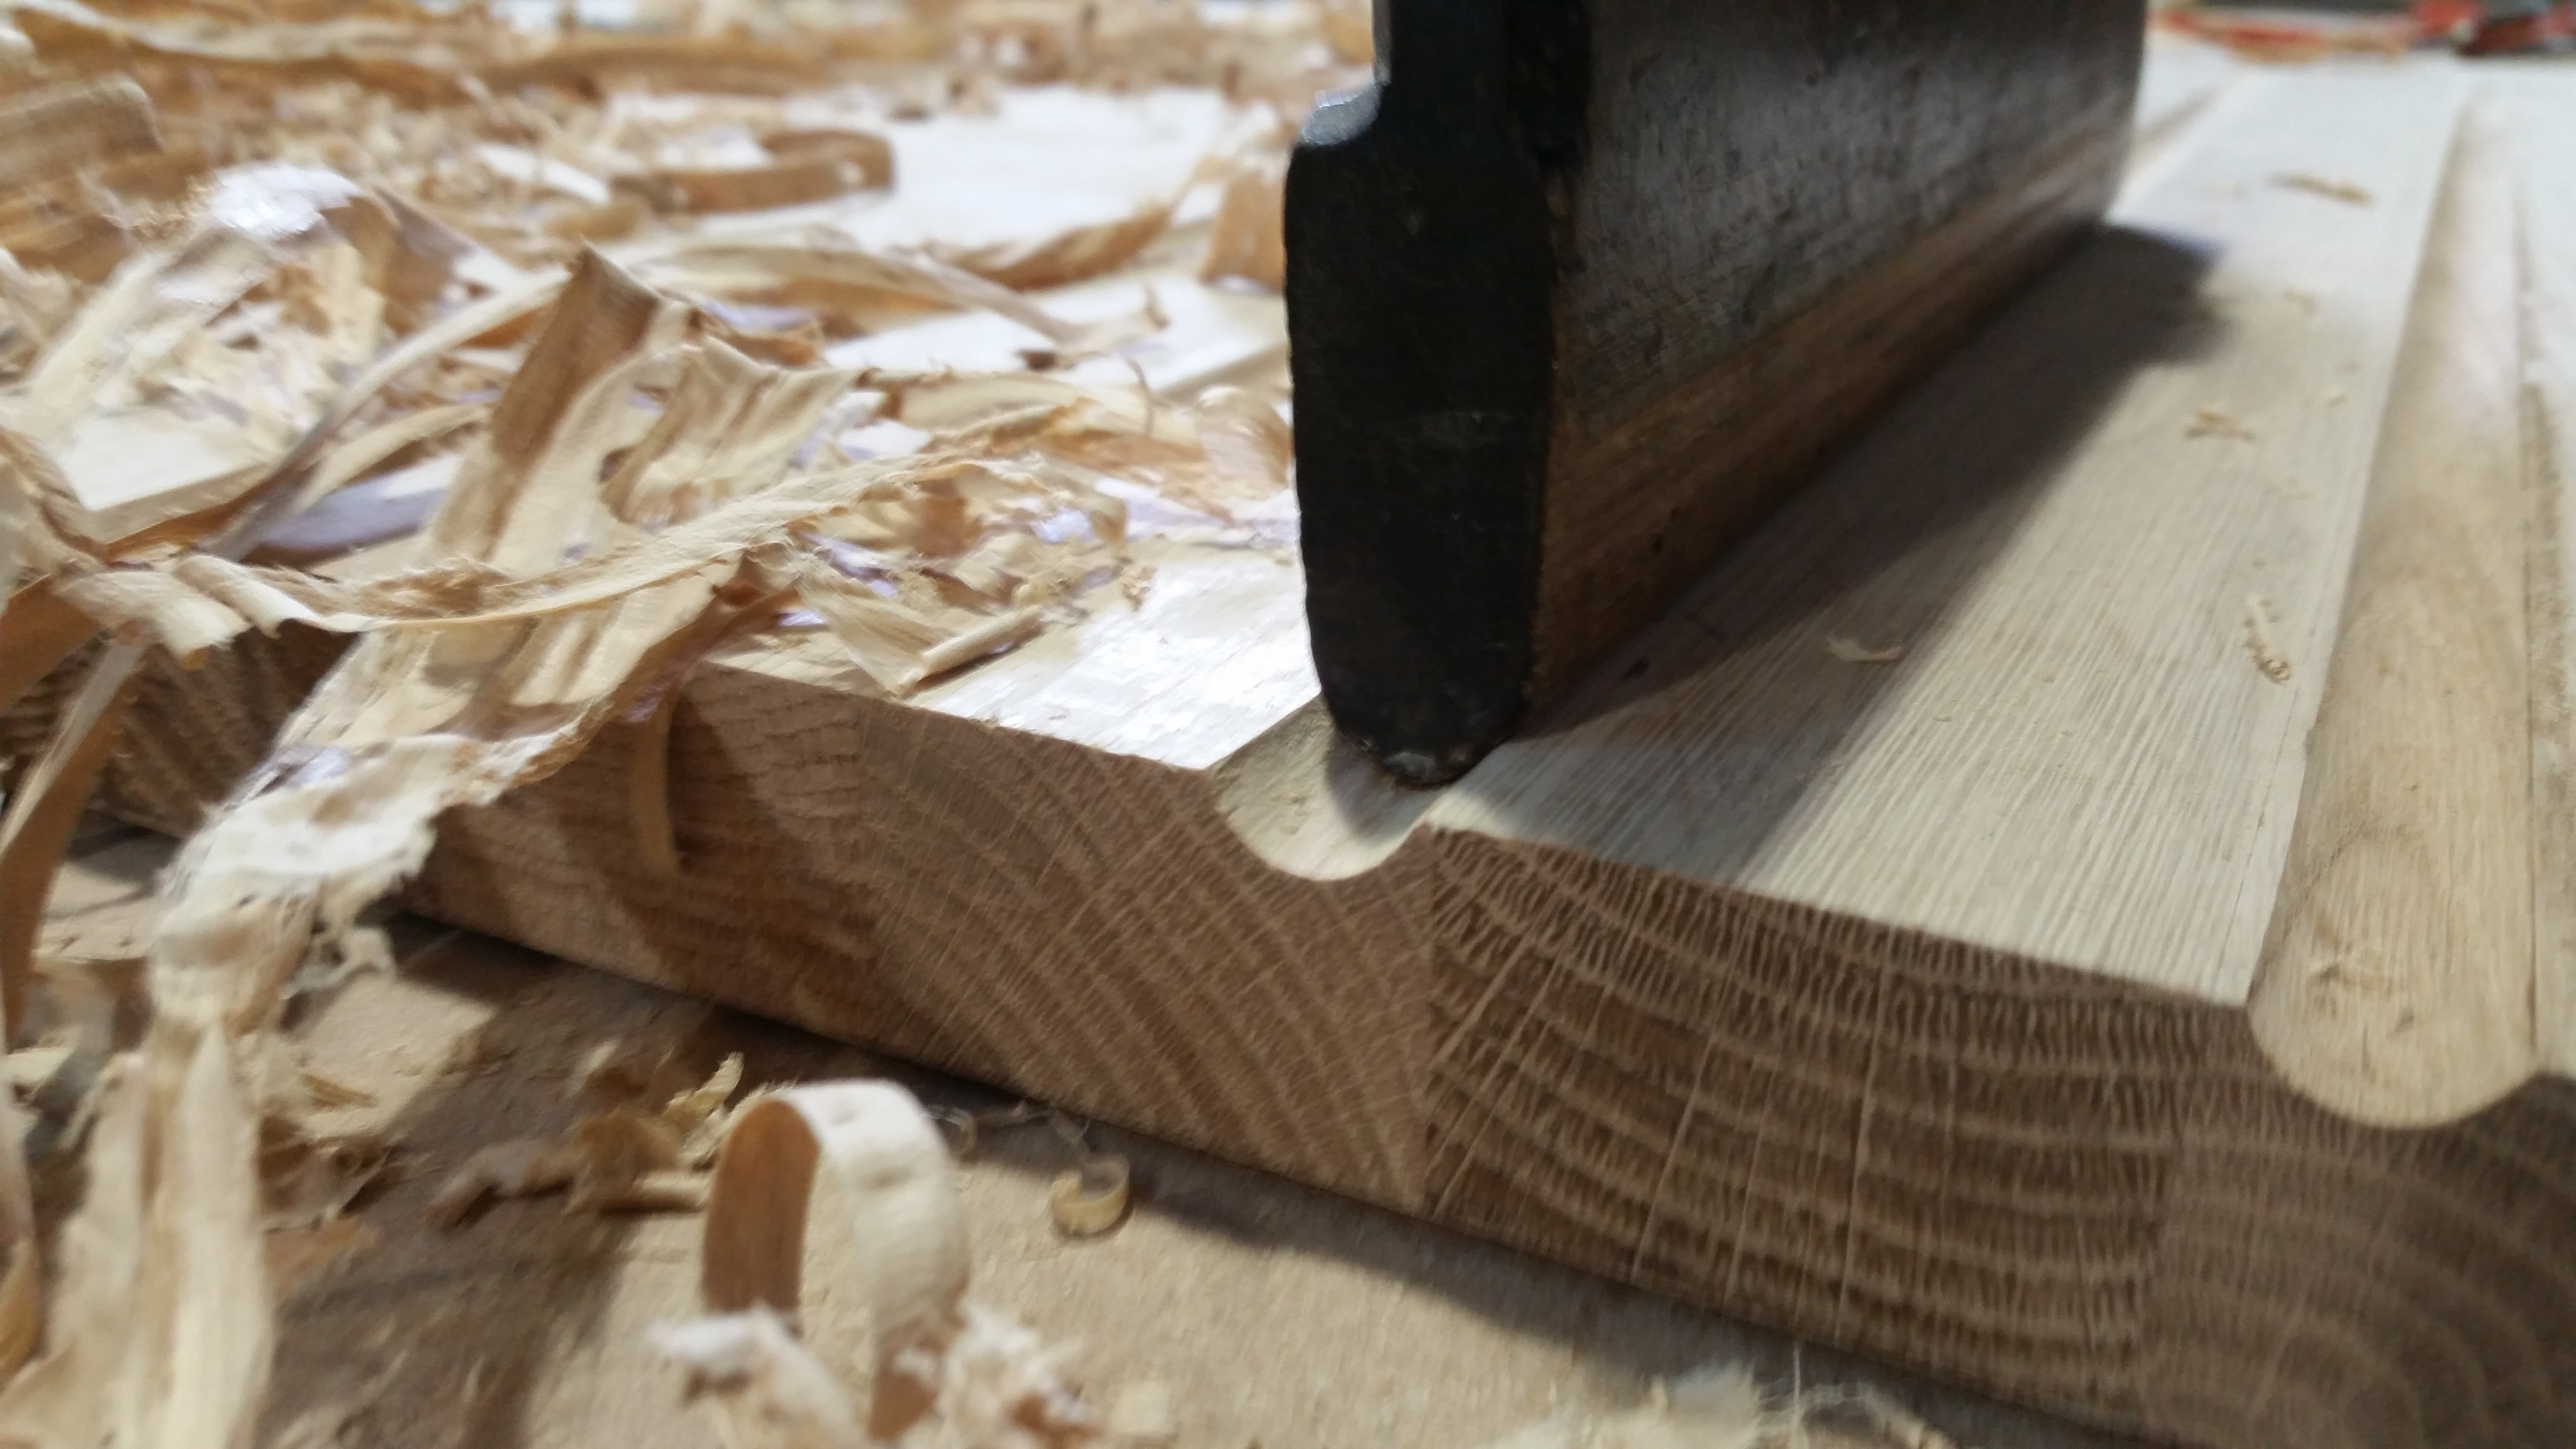 Moulding Planes to Make Worktop Drainage Grooves